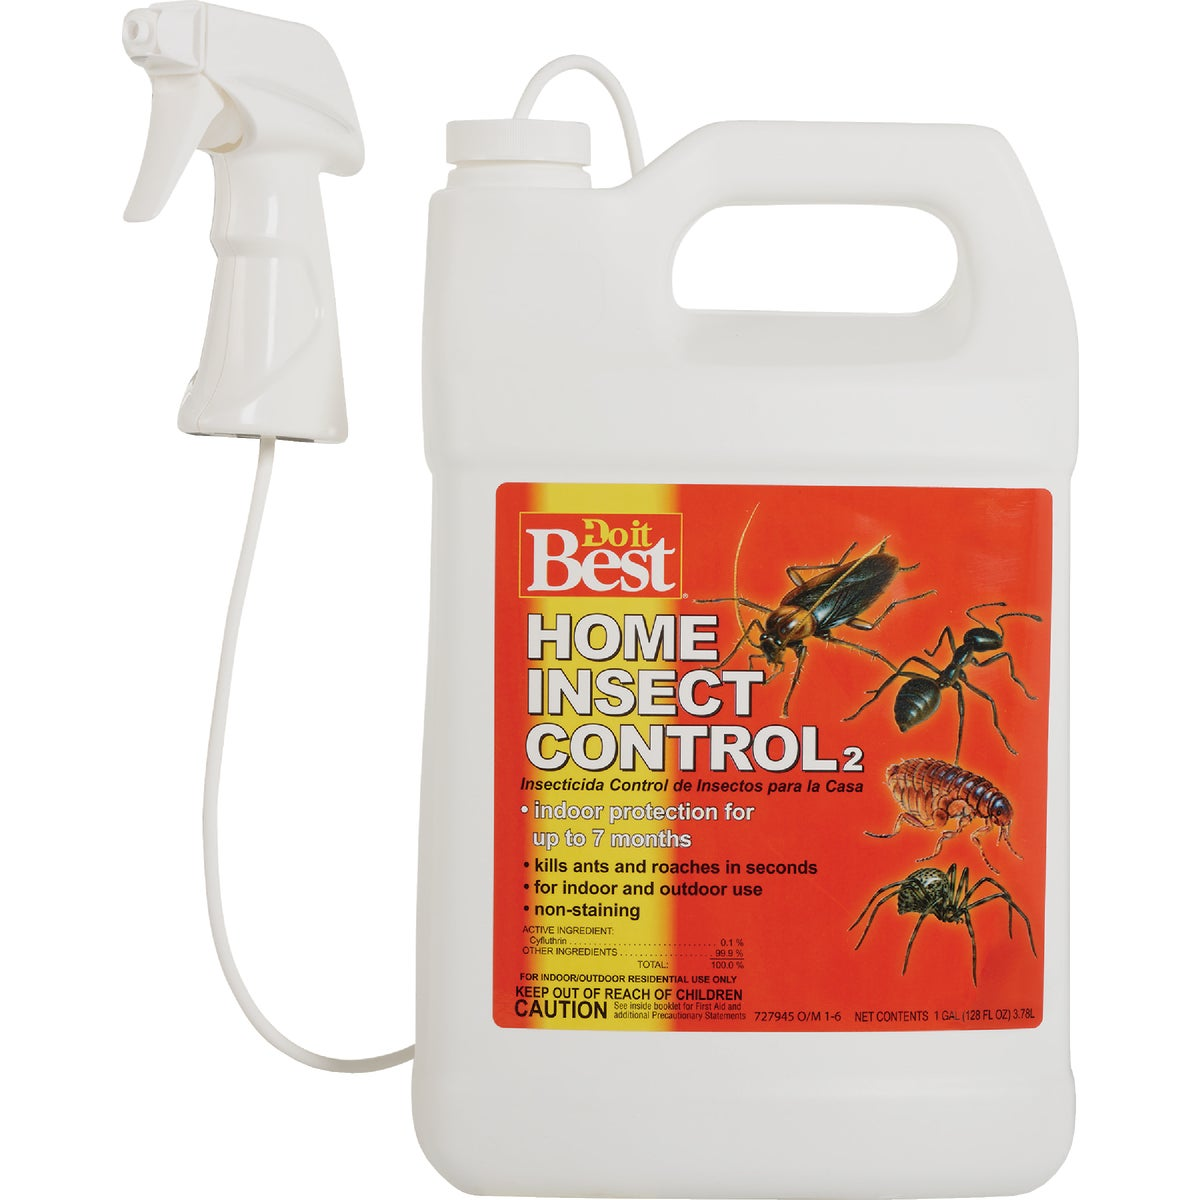 GAL HOME PEST CONTROL - 727945 by Maid Brands Inc